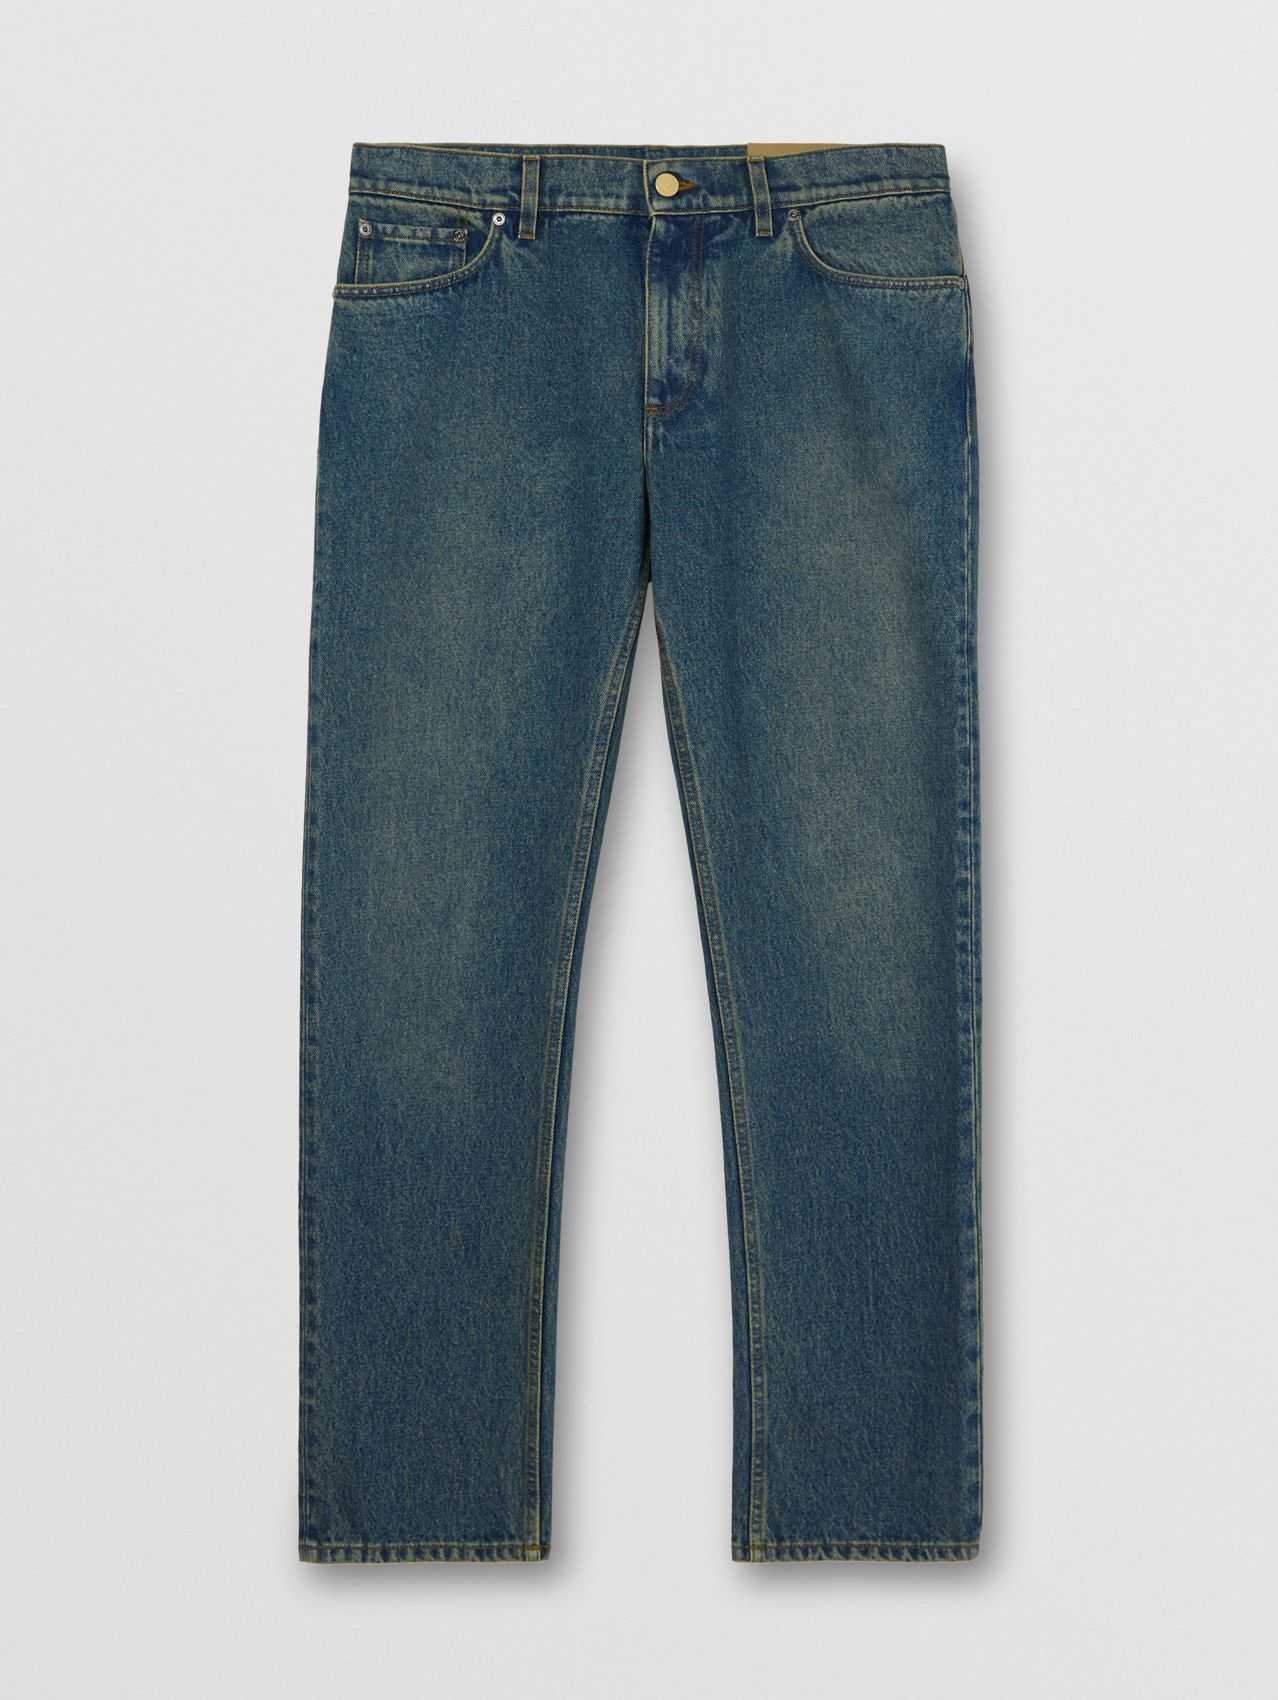 Straight Fit Washed Jeans (Indigo)